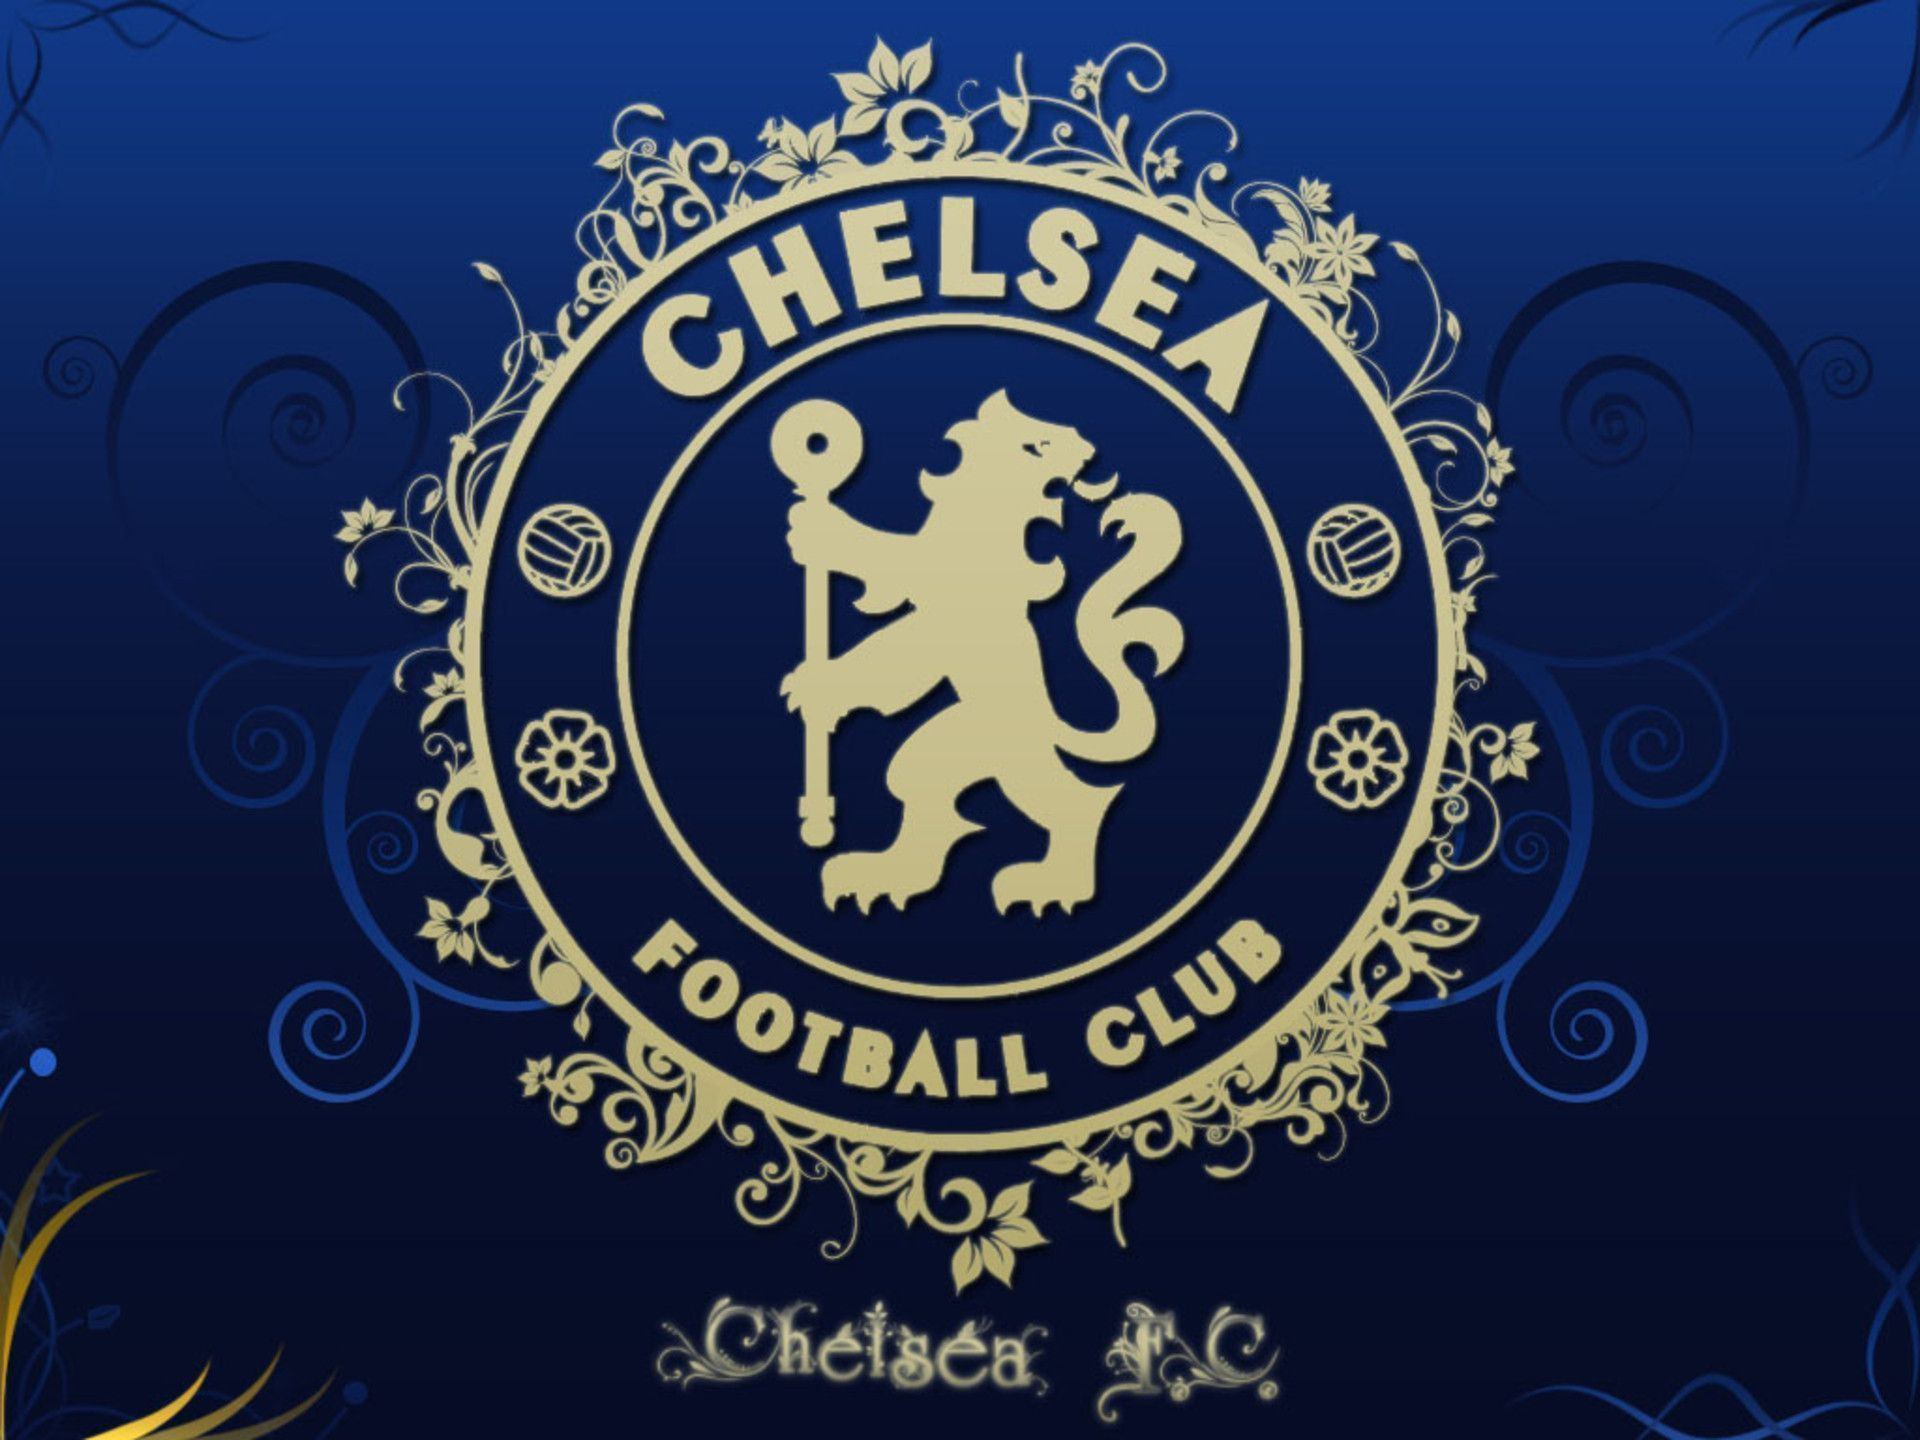 Collection of chelsea wallpaper on hdwallpapers 1024576 wallpaper collection of chelsea wallpaper on hdwallpapers 1024576 wallpaper chelsea adorable wallpapers voltagebd Image collections